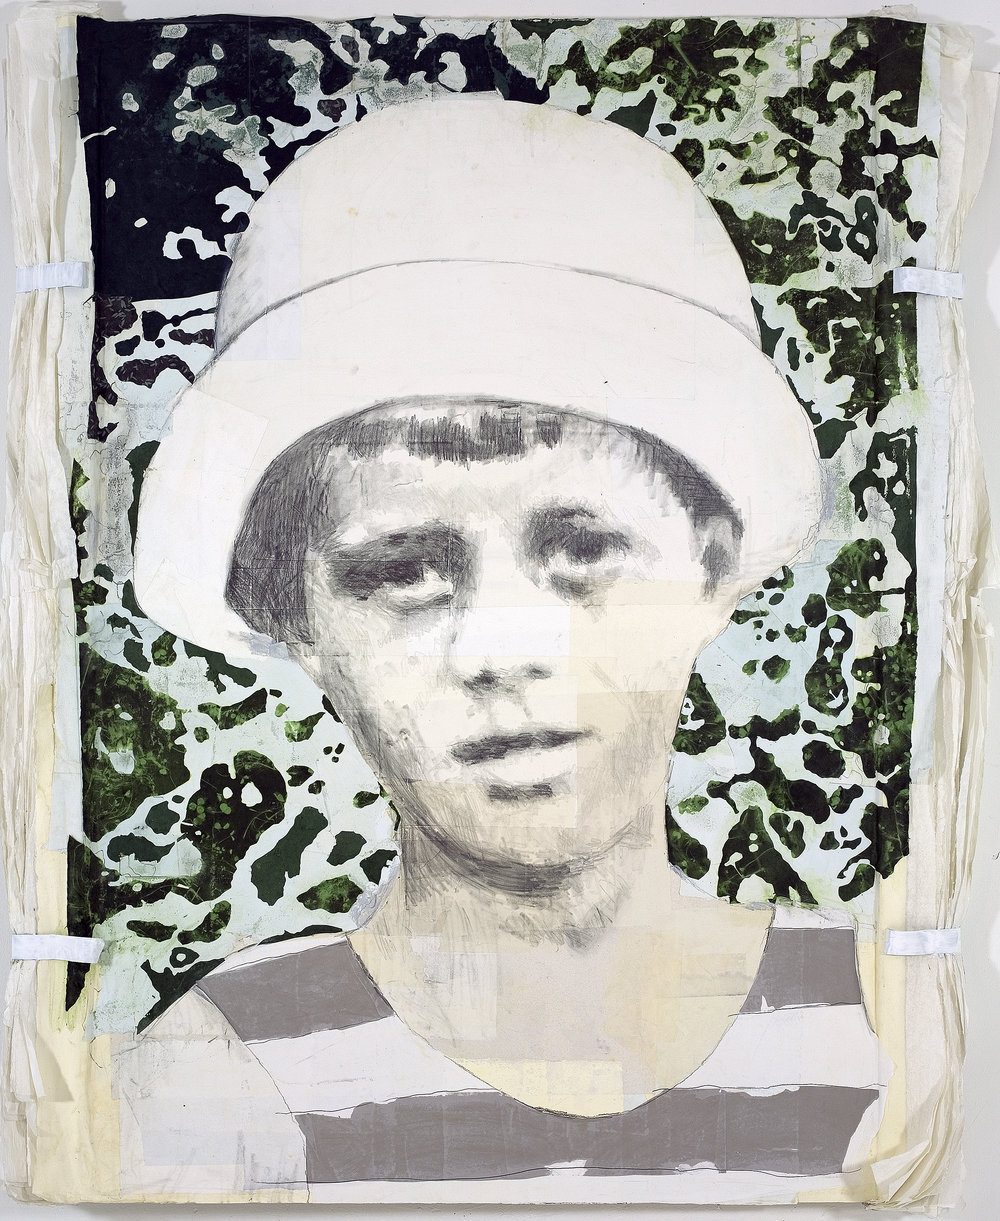 John F. Kennedy, 2008, 72 x 48 inches, Mixed media on board